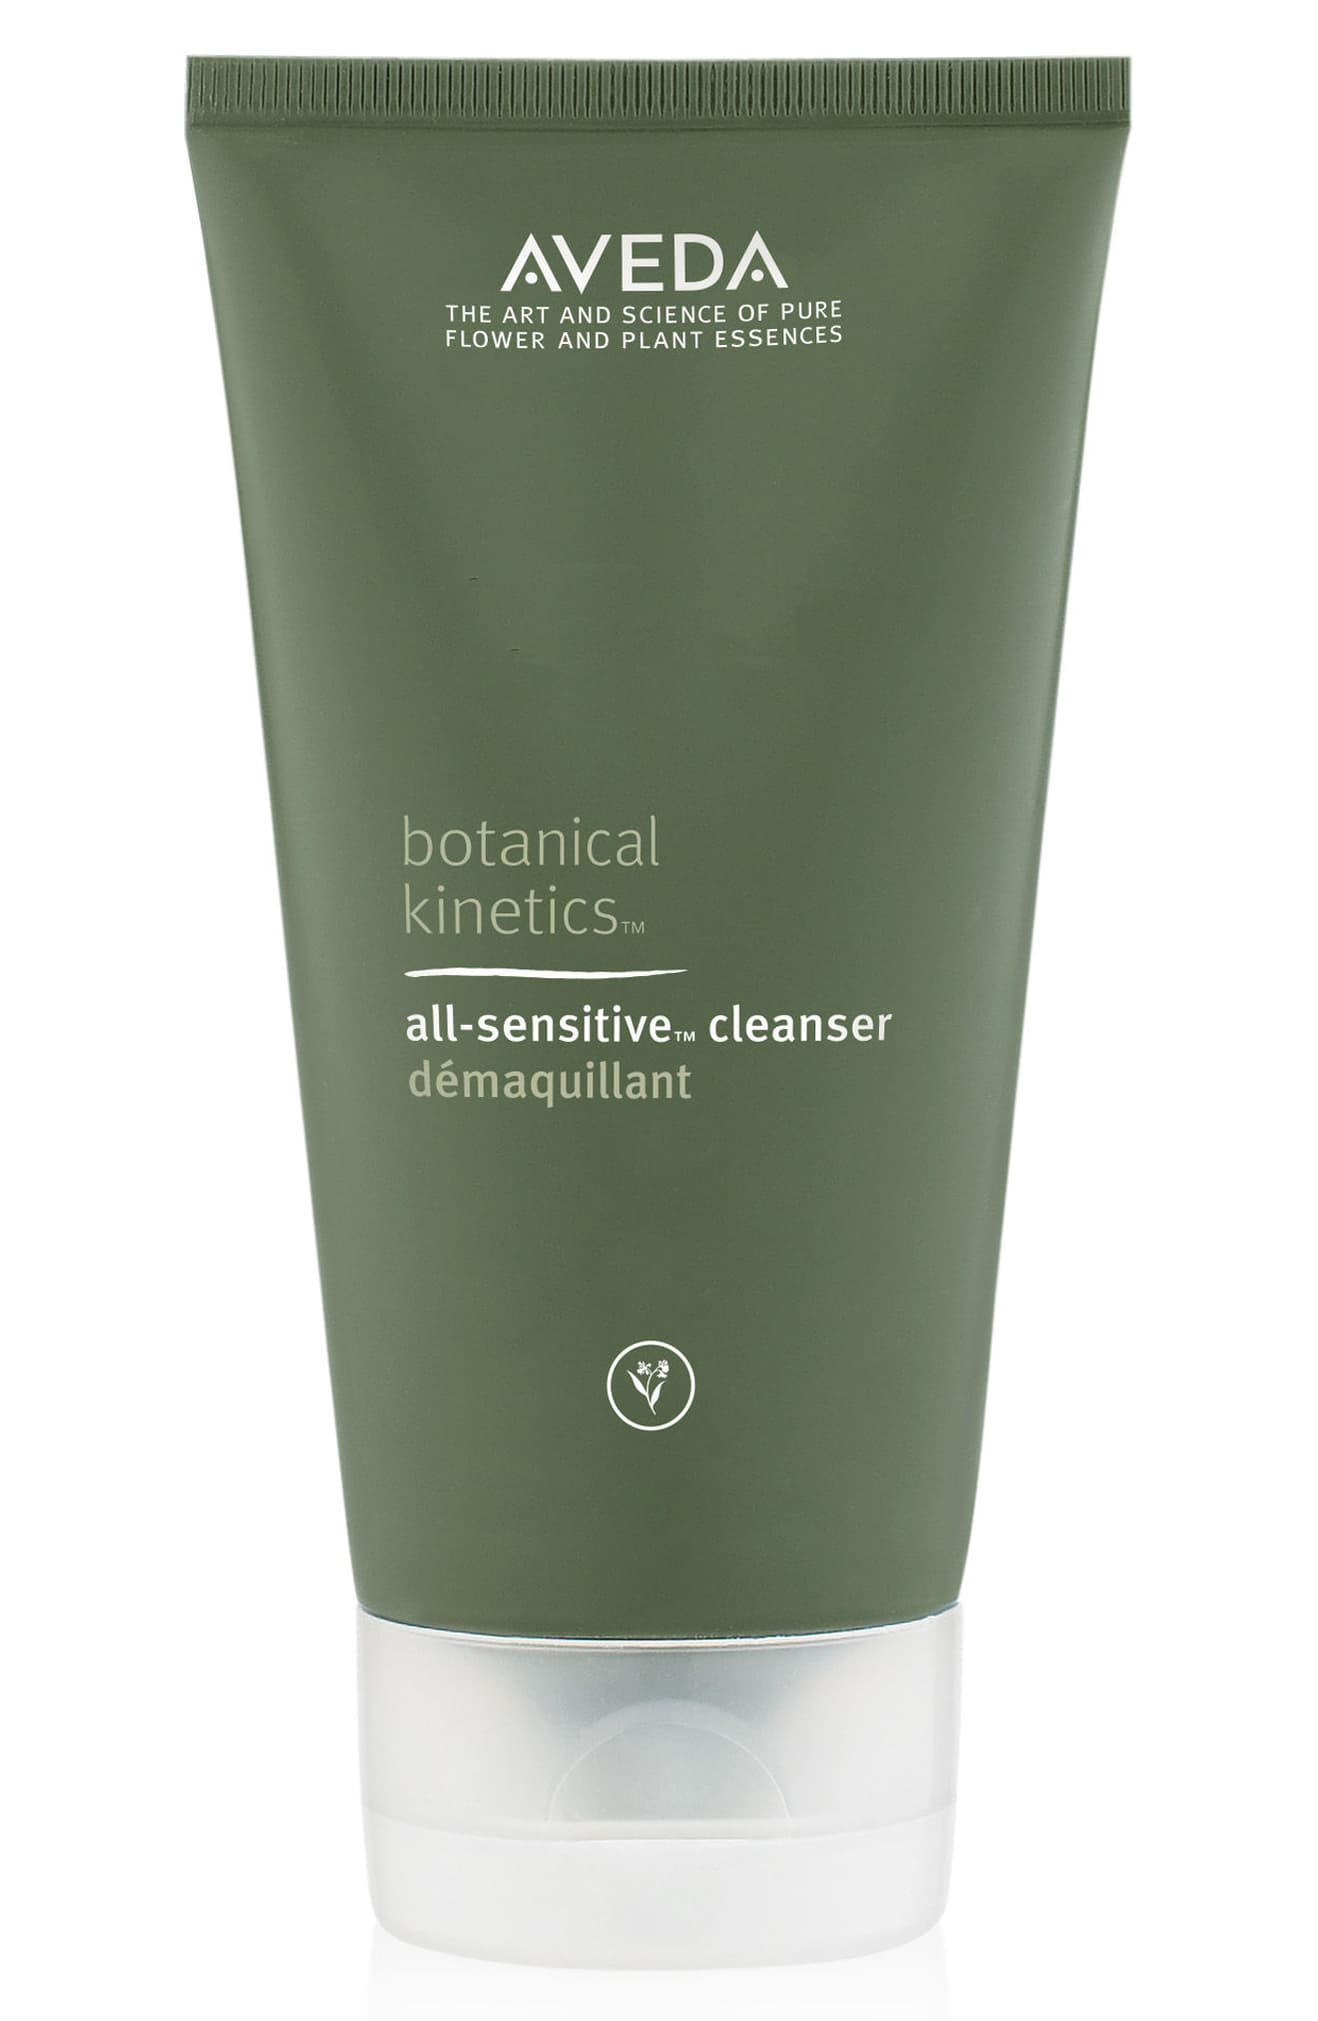 AVEDA Botanical Kinetics™ All-Sensitive Cleanser